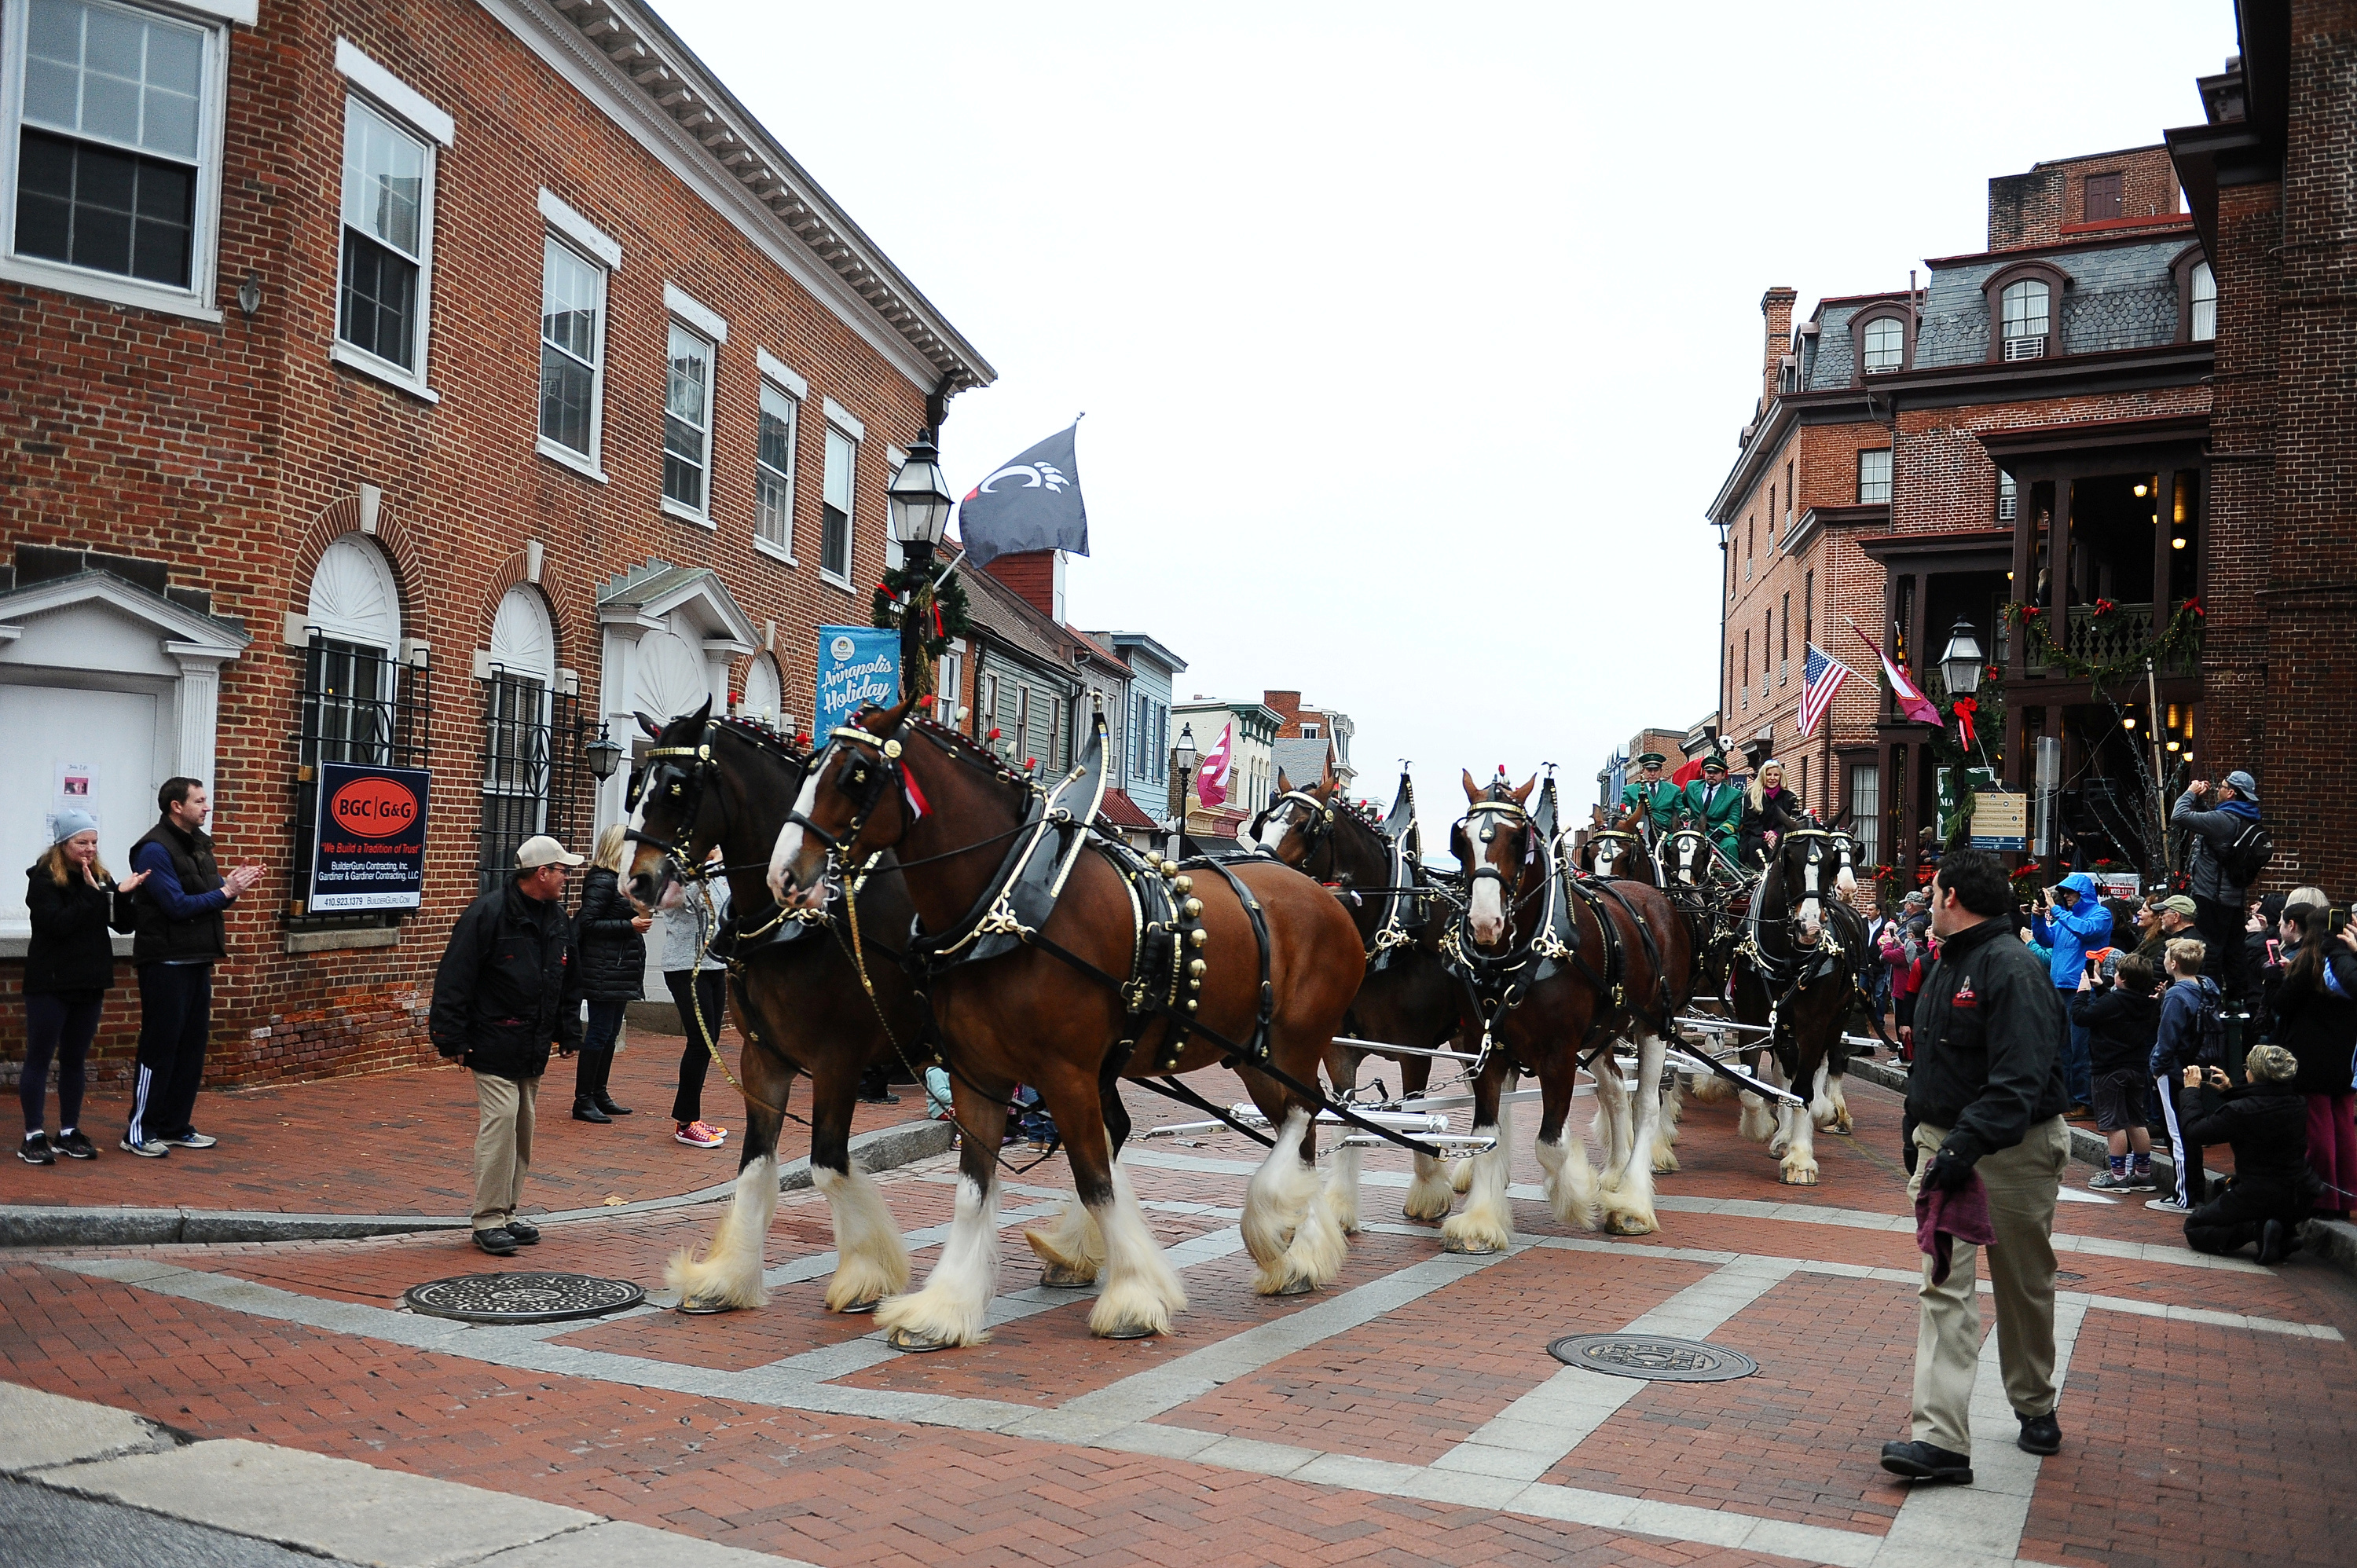 The Budweiser Clydesdales lead the Military Bowl parade marched Main Street in Annapolis